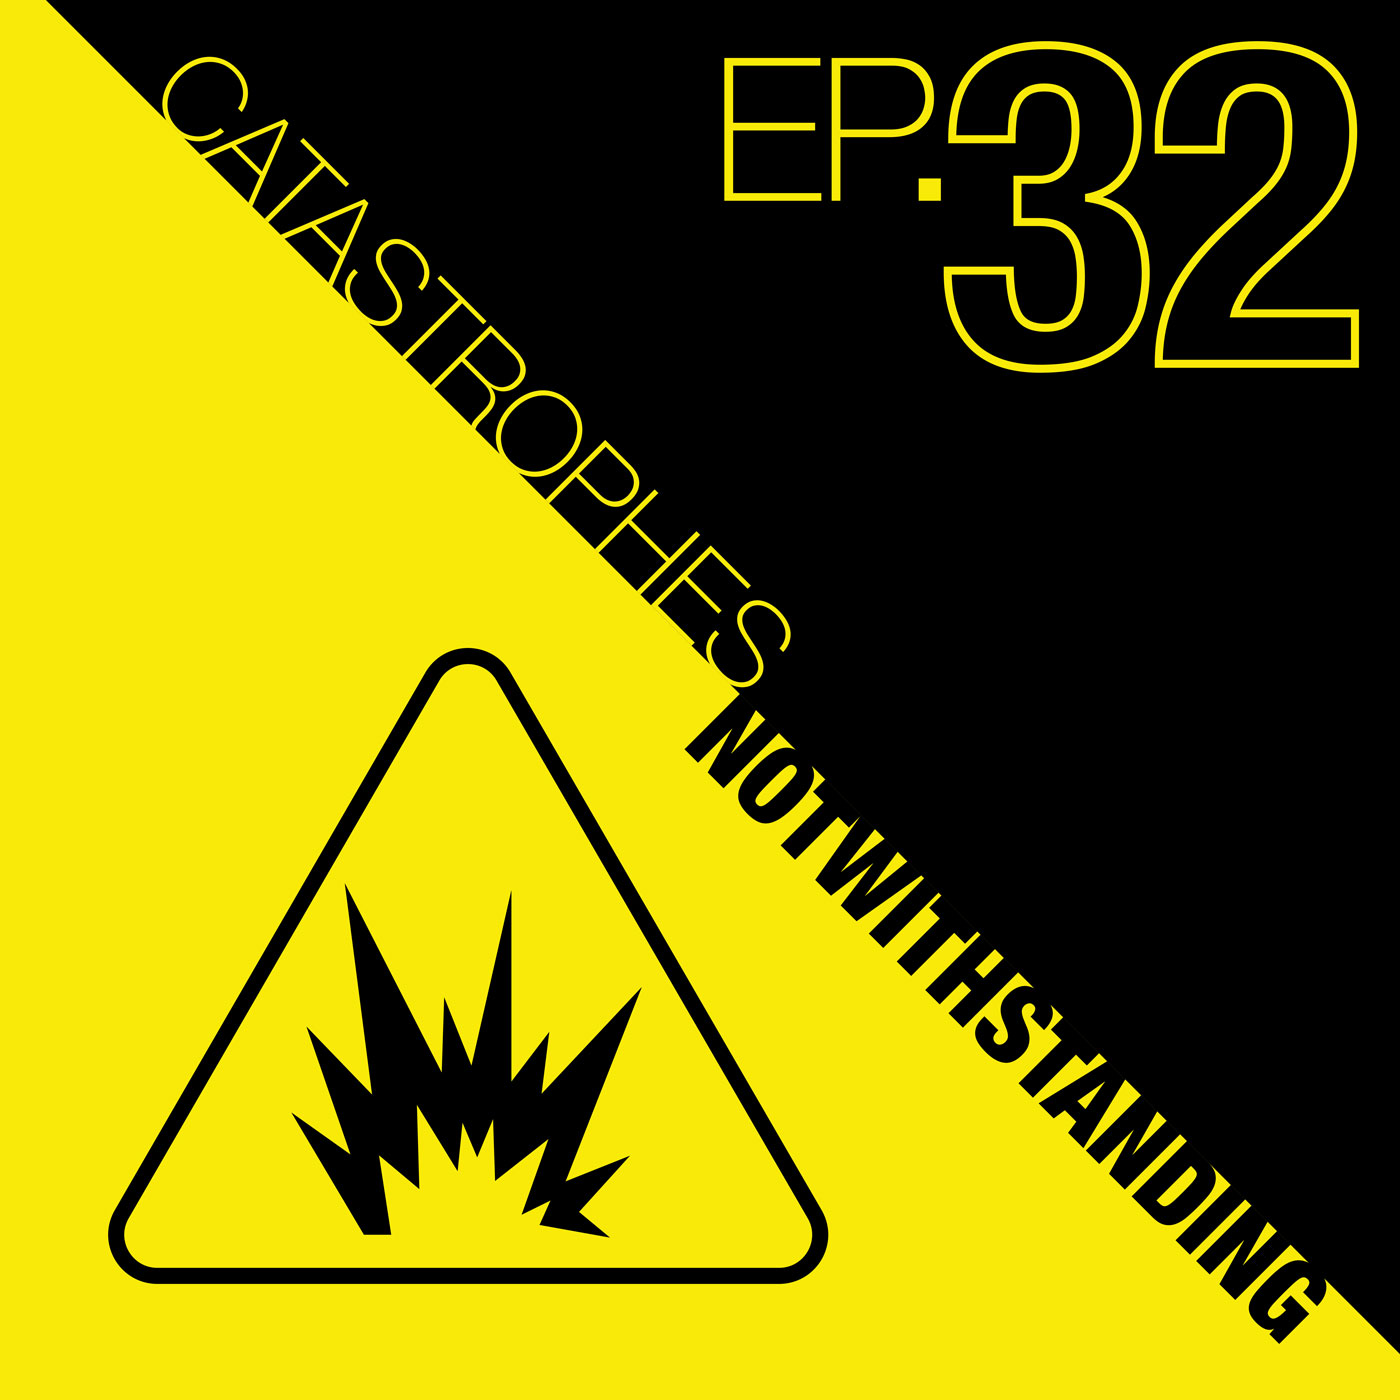 Cover Image of Catastrophes Notwithstanding Episode 32